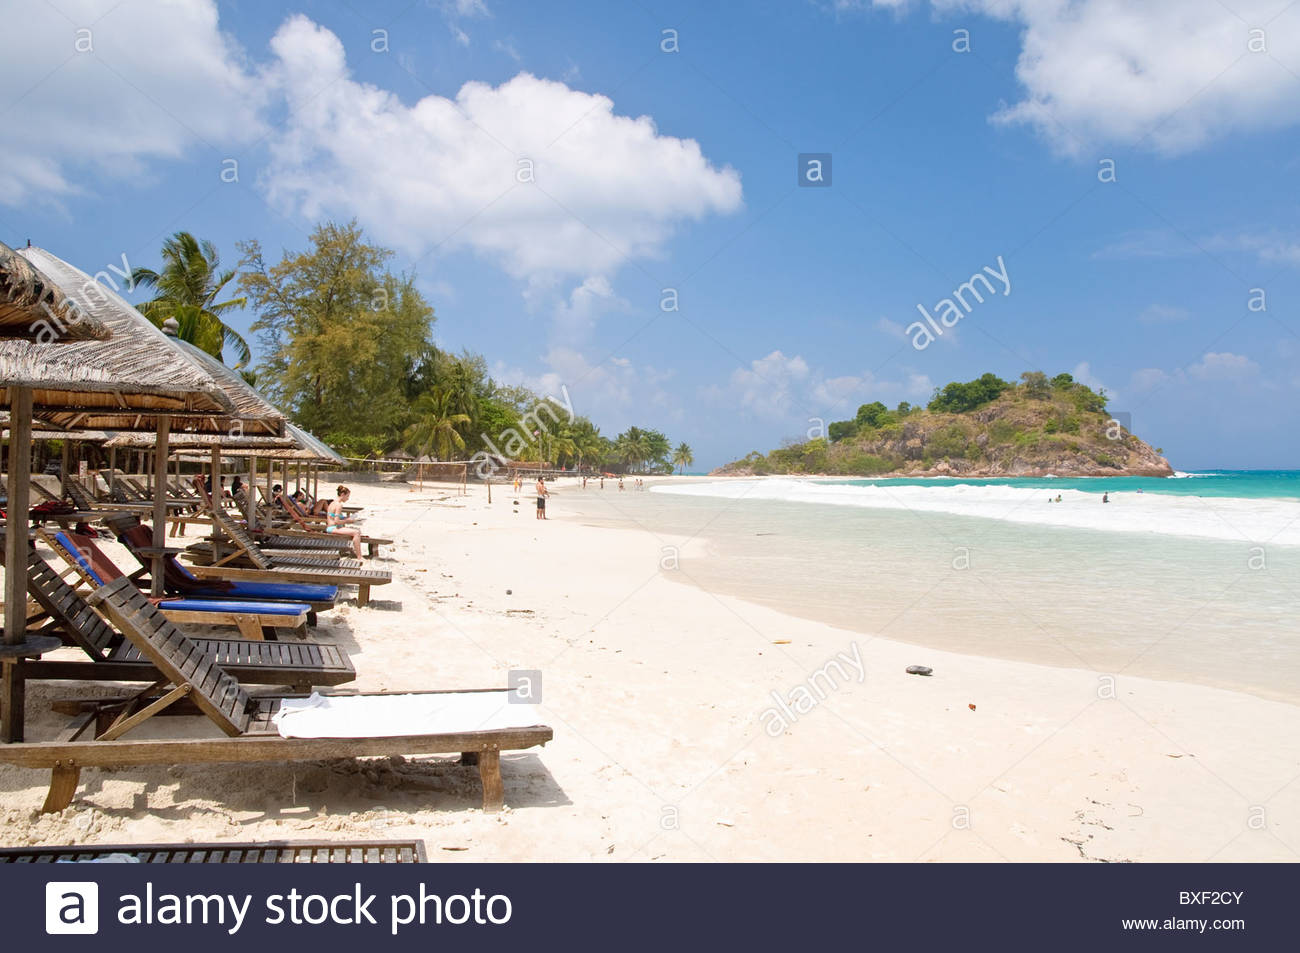 Beach with deck chairs, Pulau Redang island, Malaysia, Southeast Asia, Asia Stock Photo